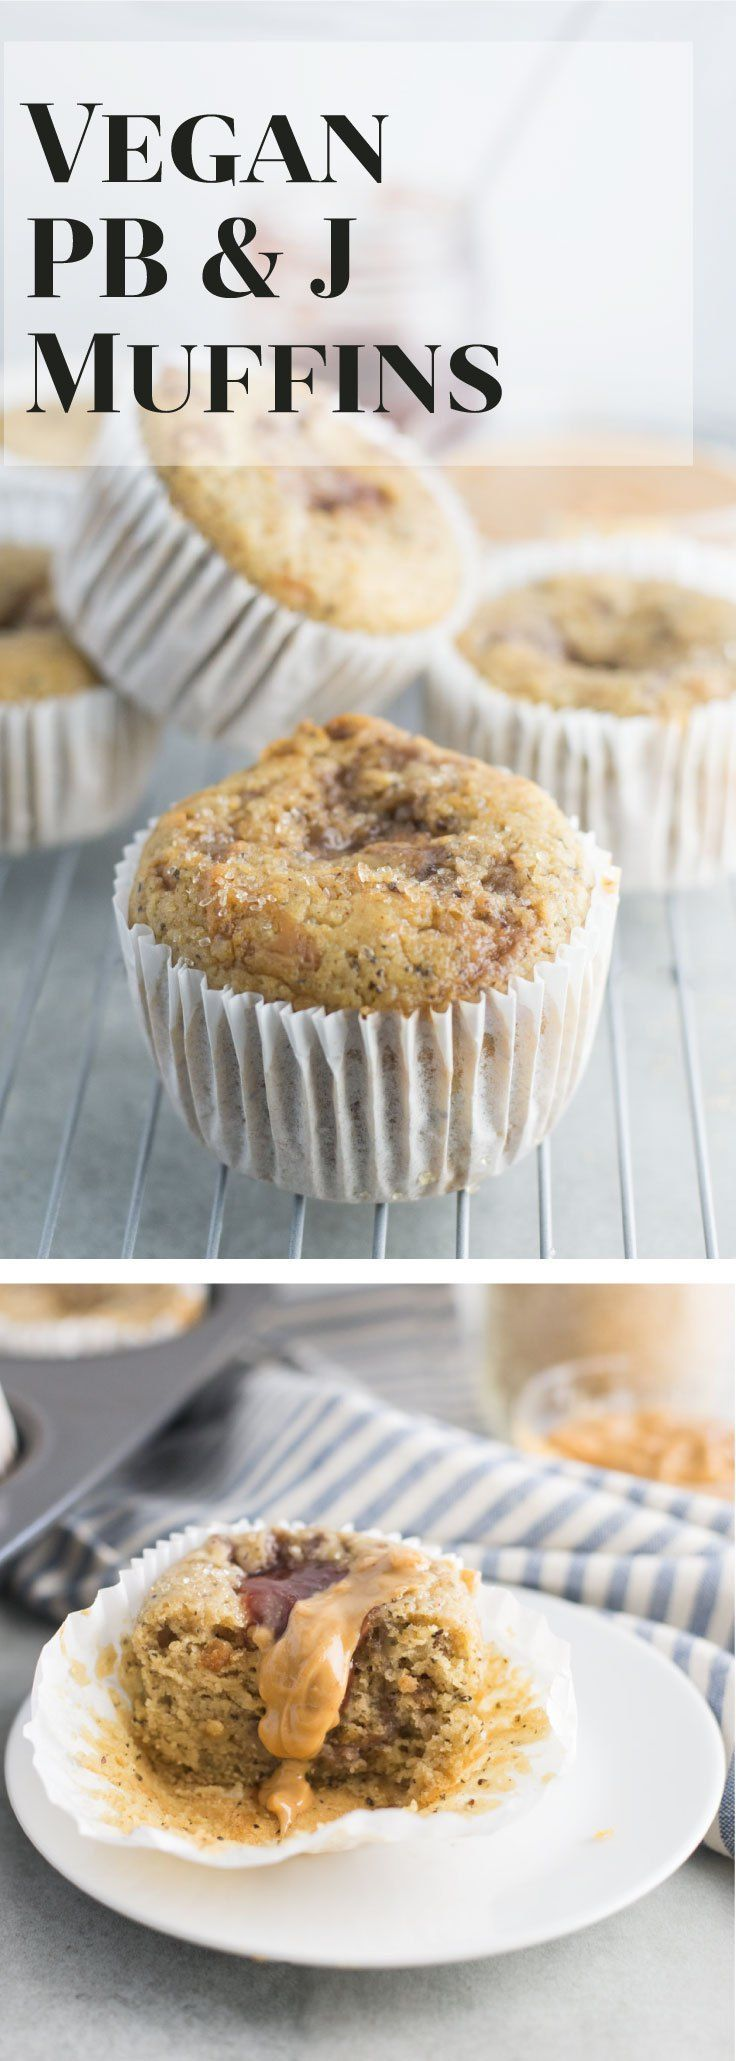 Vegan Peanut Butter and Jelly Muffins -- These vegan muffins take on the classic peanut butter and jelly flavor. Try this muffin recipe for a quick breakfast on the go or a mid day snack. - mindfulavocado